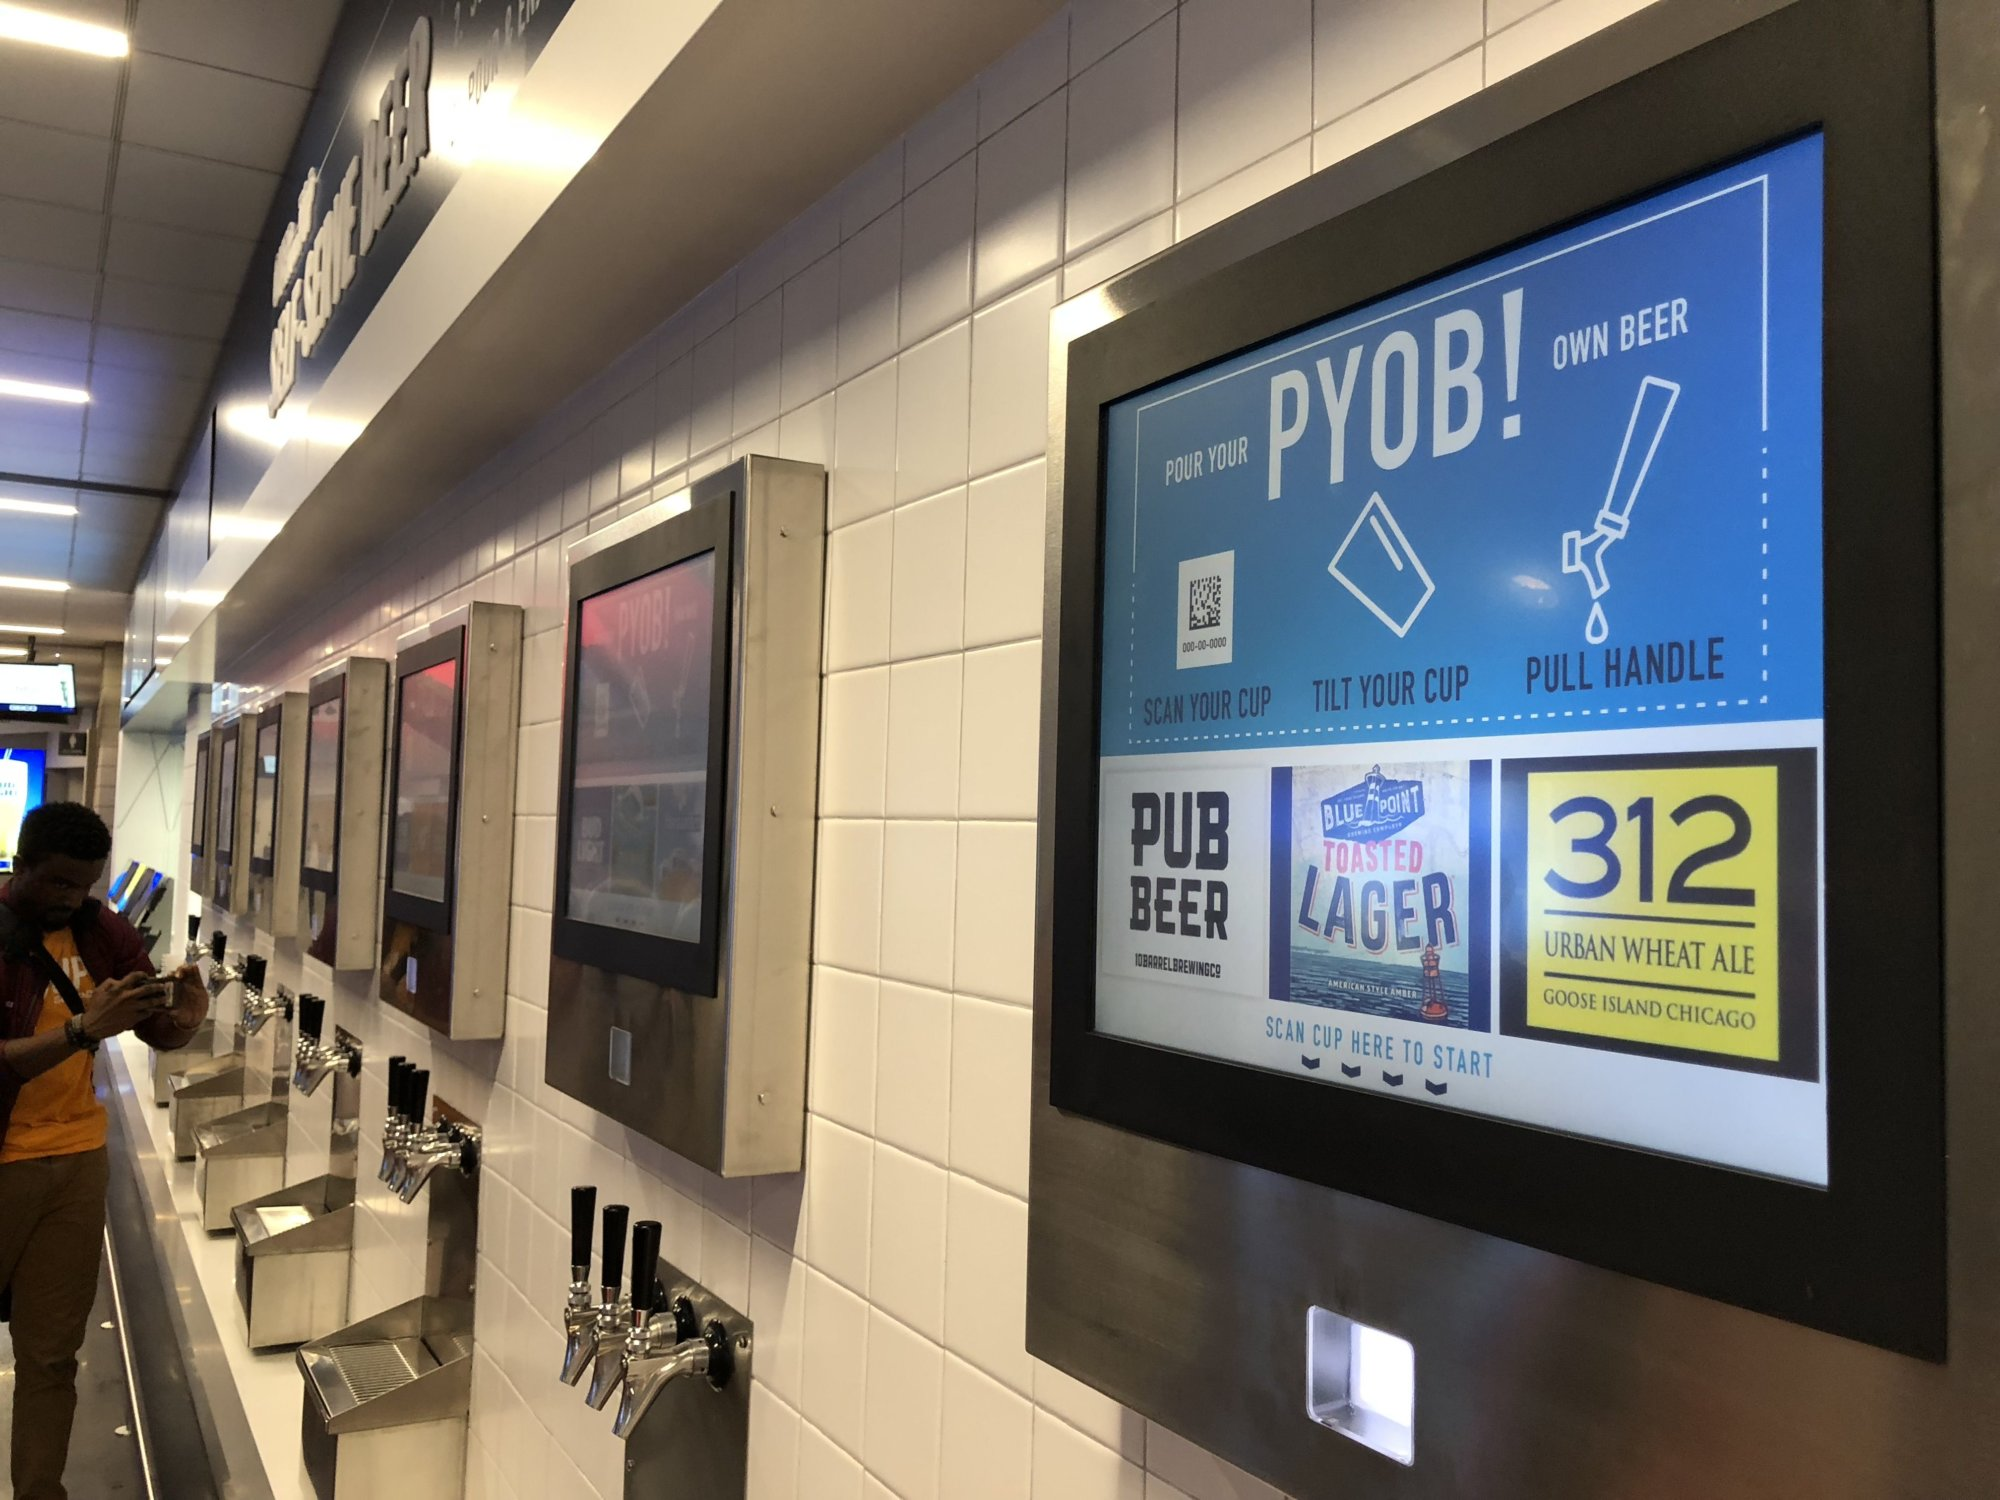 The beer wall near section 417 offers 17 different varieties of self-serve beers. (WTOP/Kristi King)